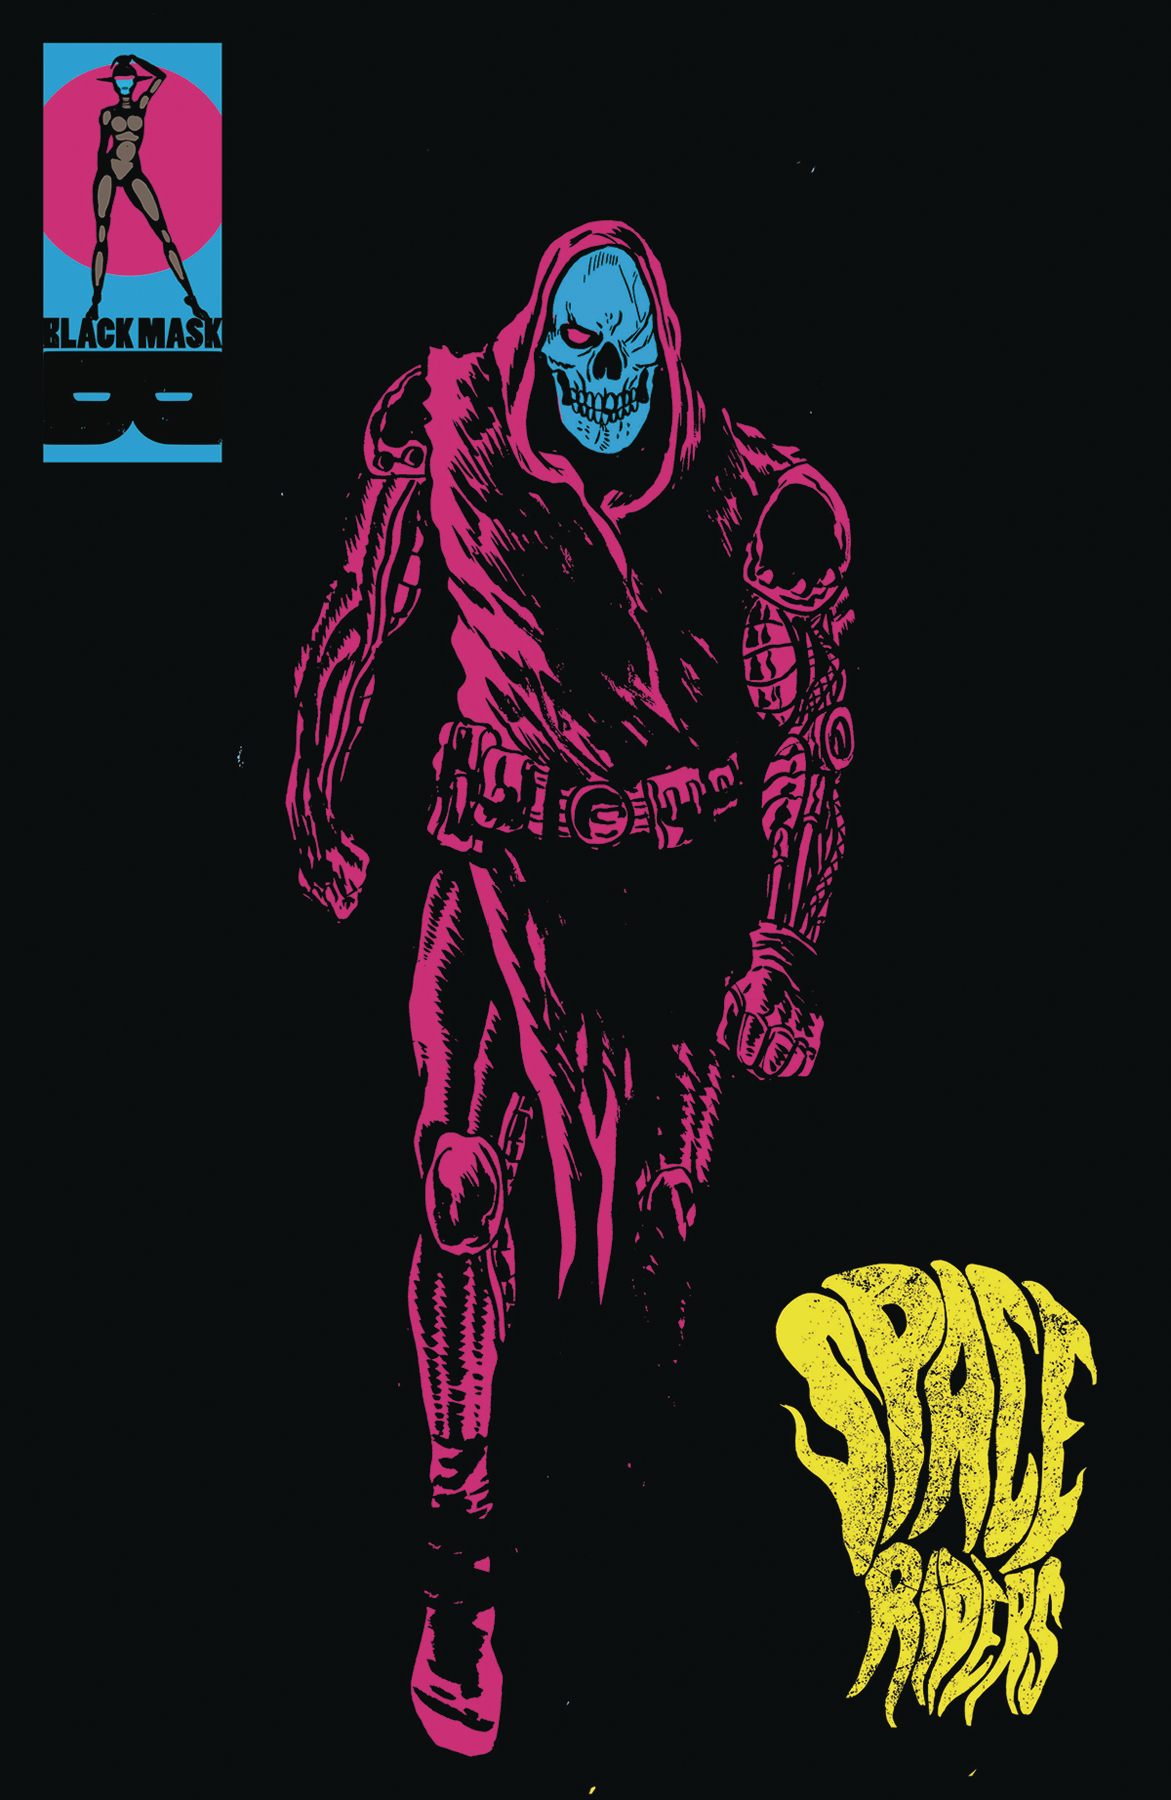 SPACE RIDERS VORTEX OF DARKNESS #1 (MR)